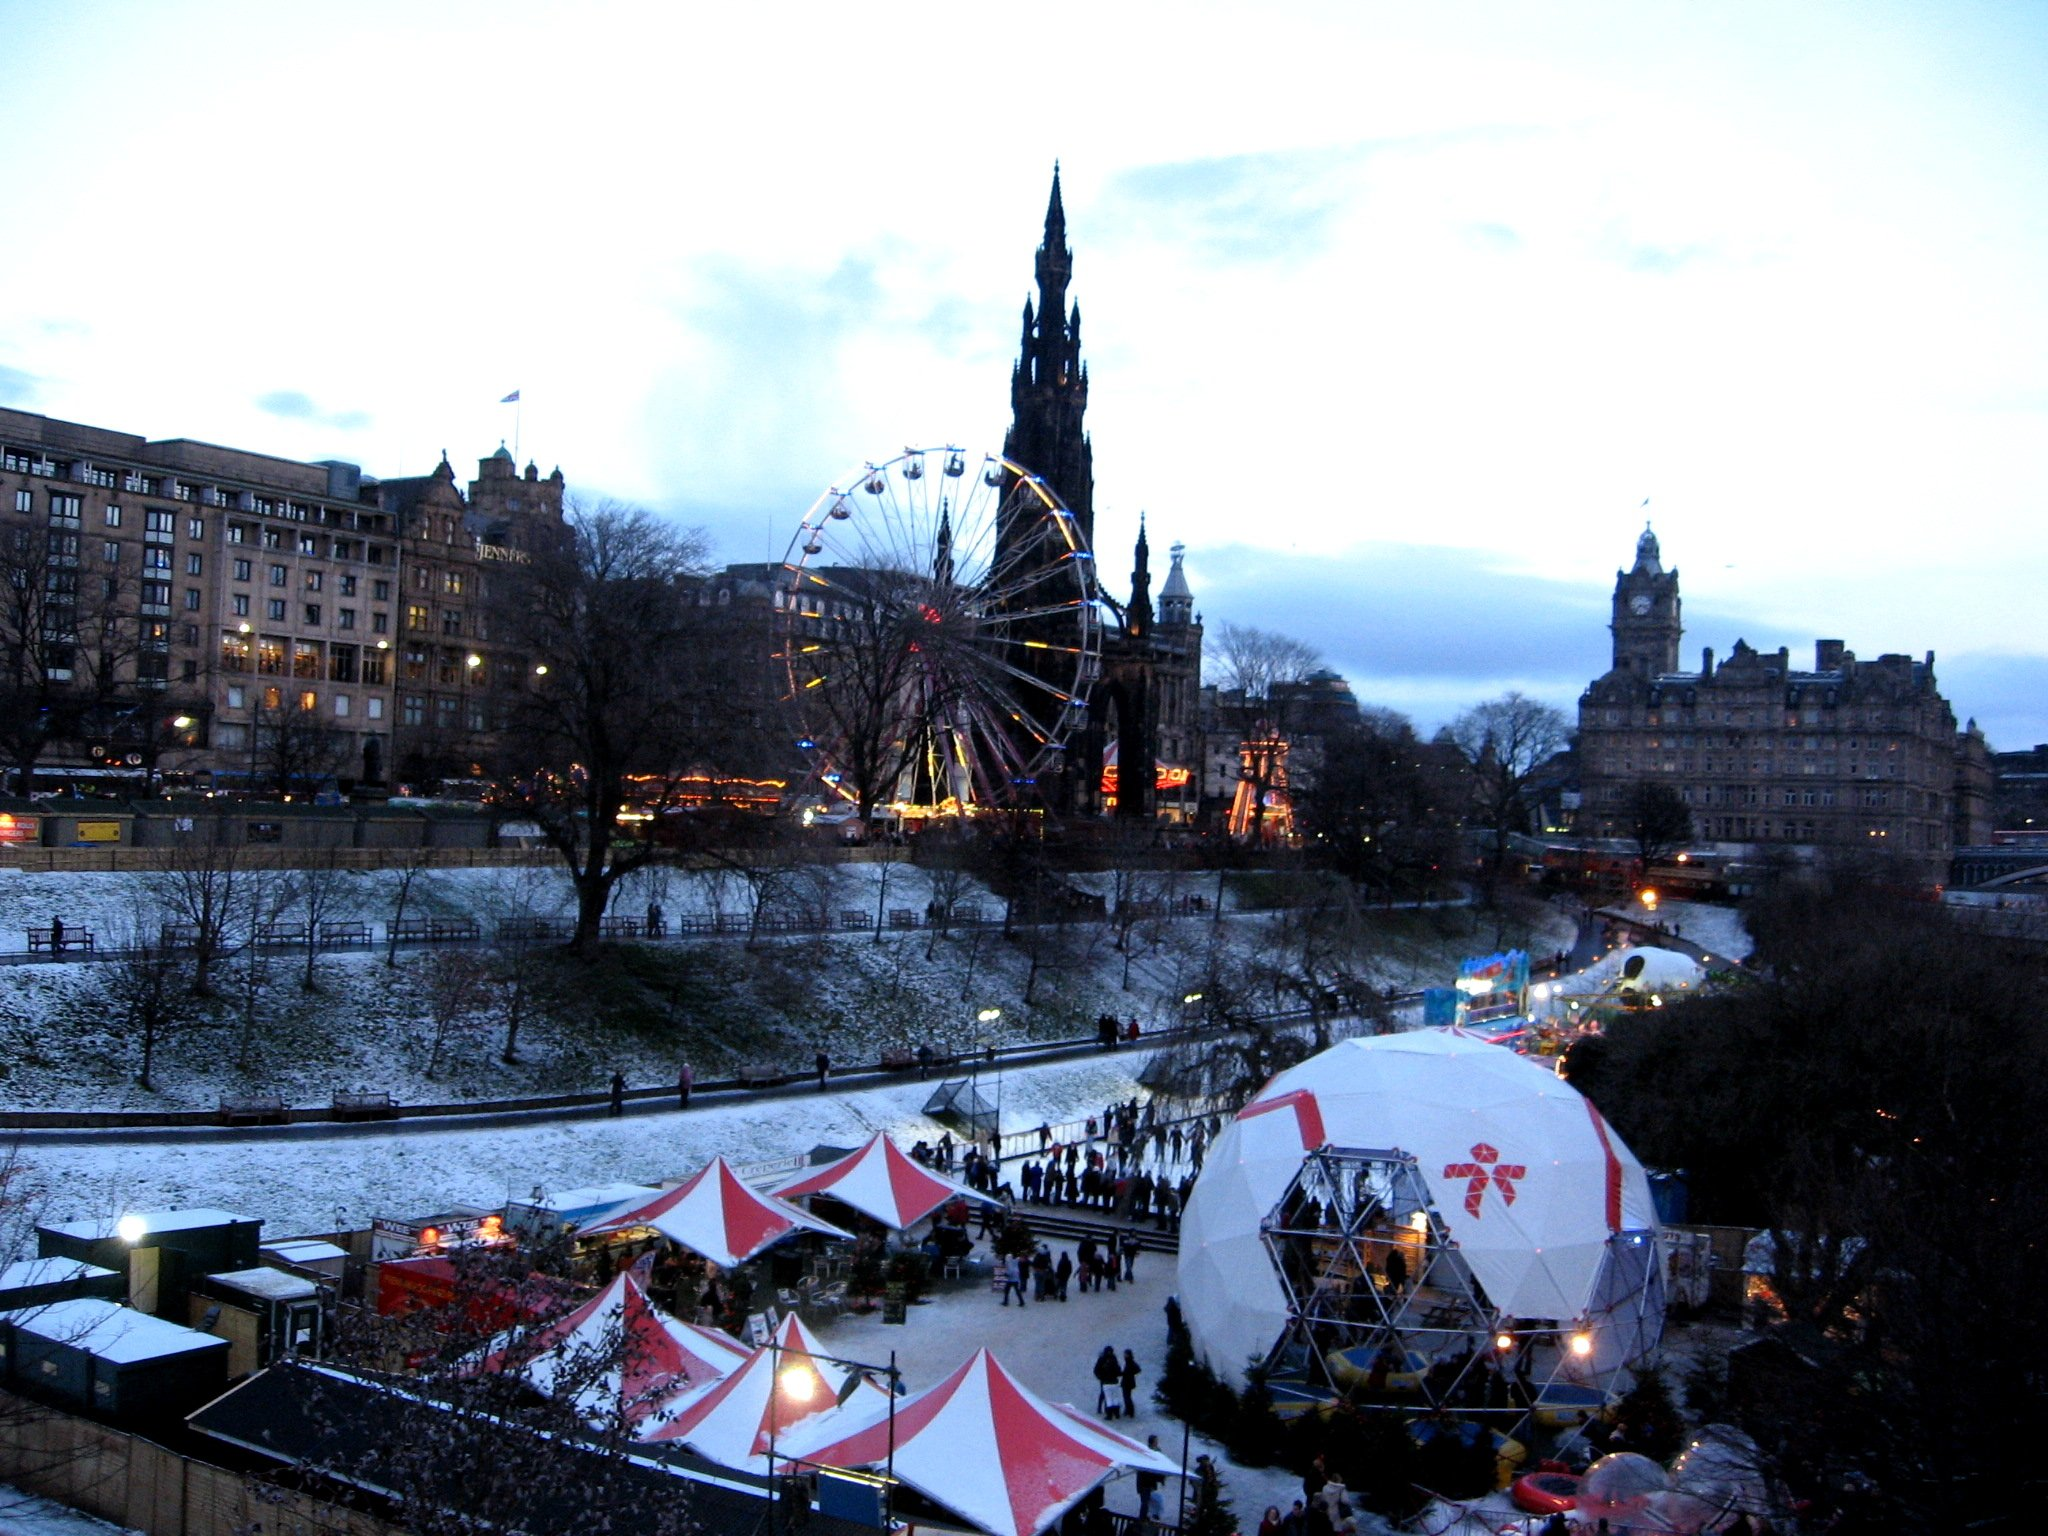 Edinburgh's Christmas Markets and skating rink as viewed from the National Gallery of Scotland, 2009 by Ally Crockford (CC)